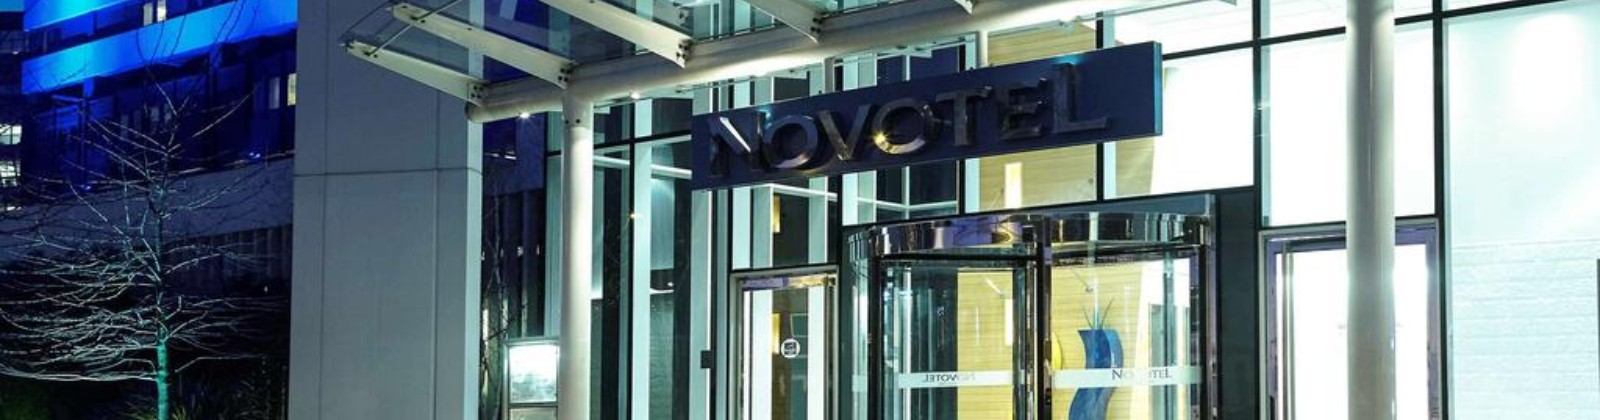 novotel london west olevene agence